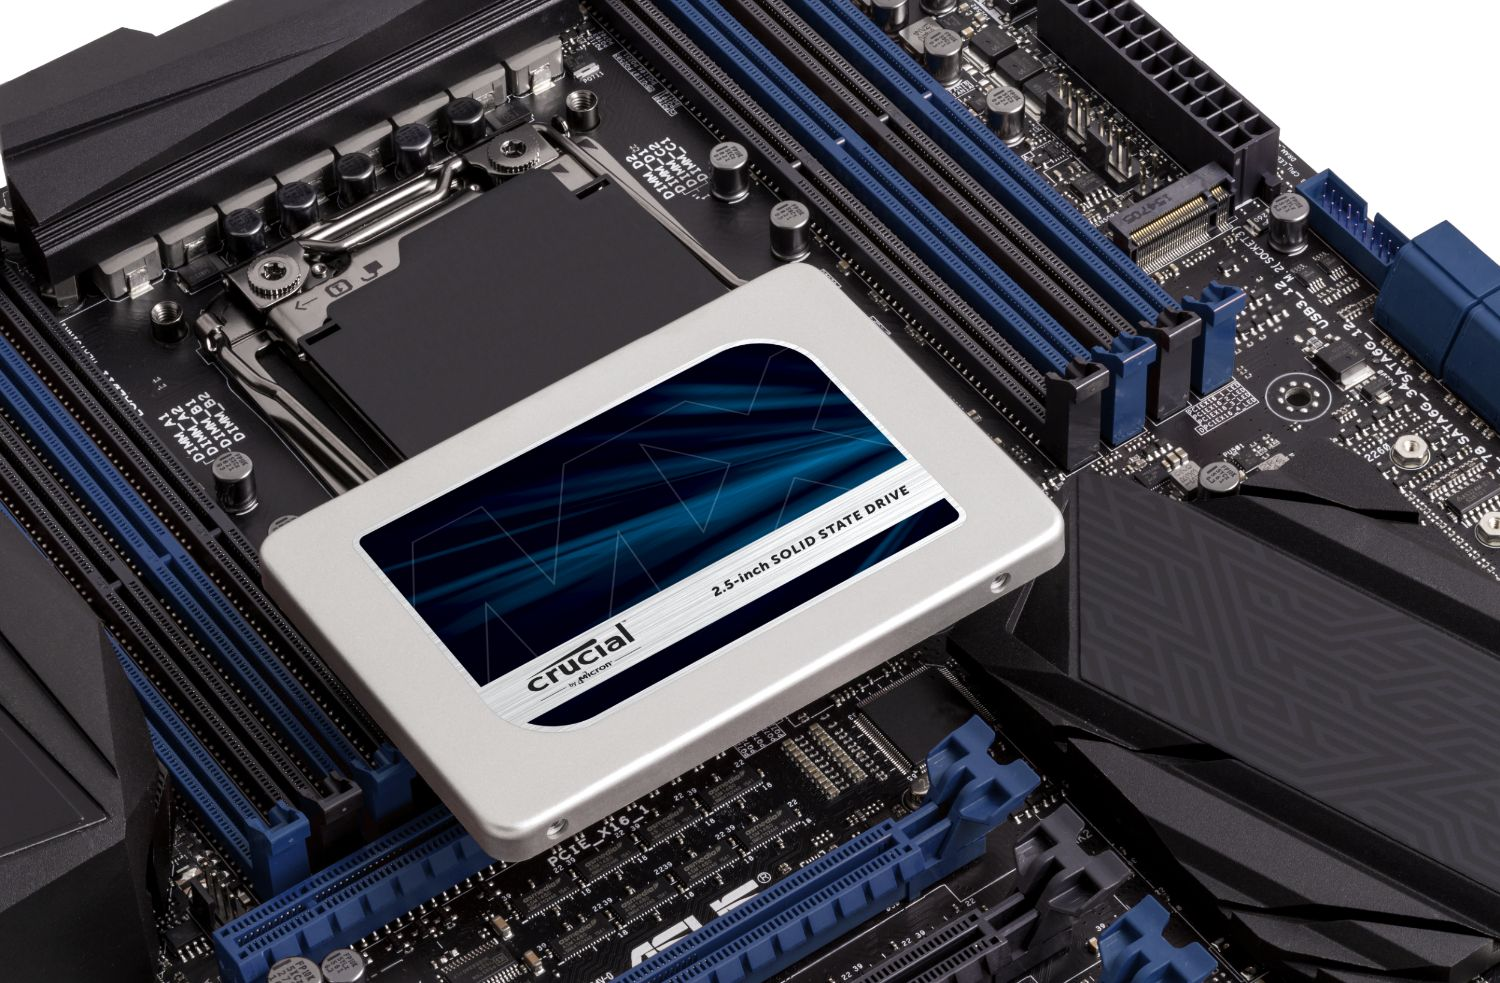 Crucial solid state drive and motherboard